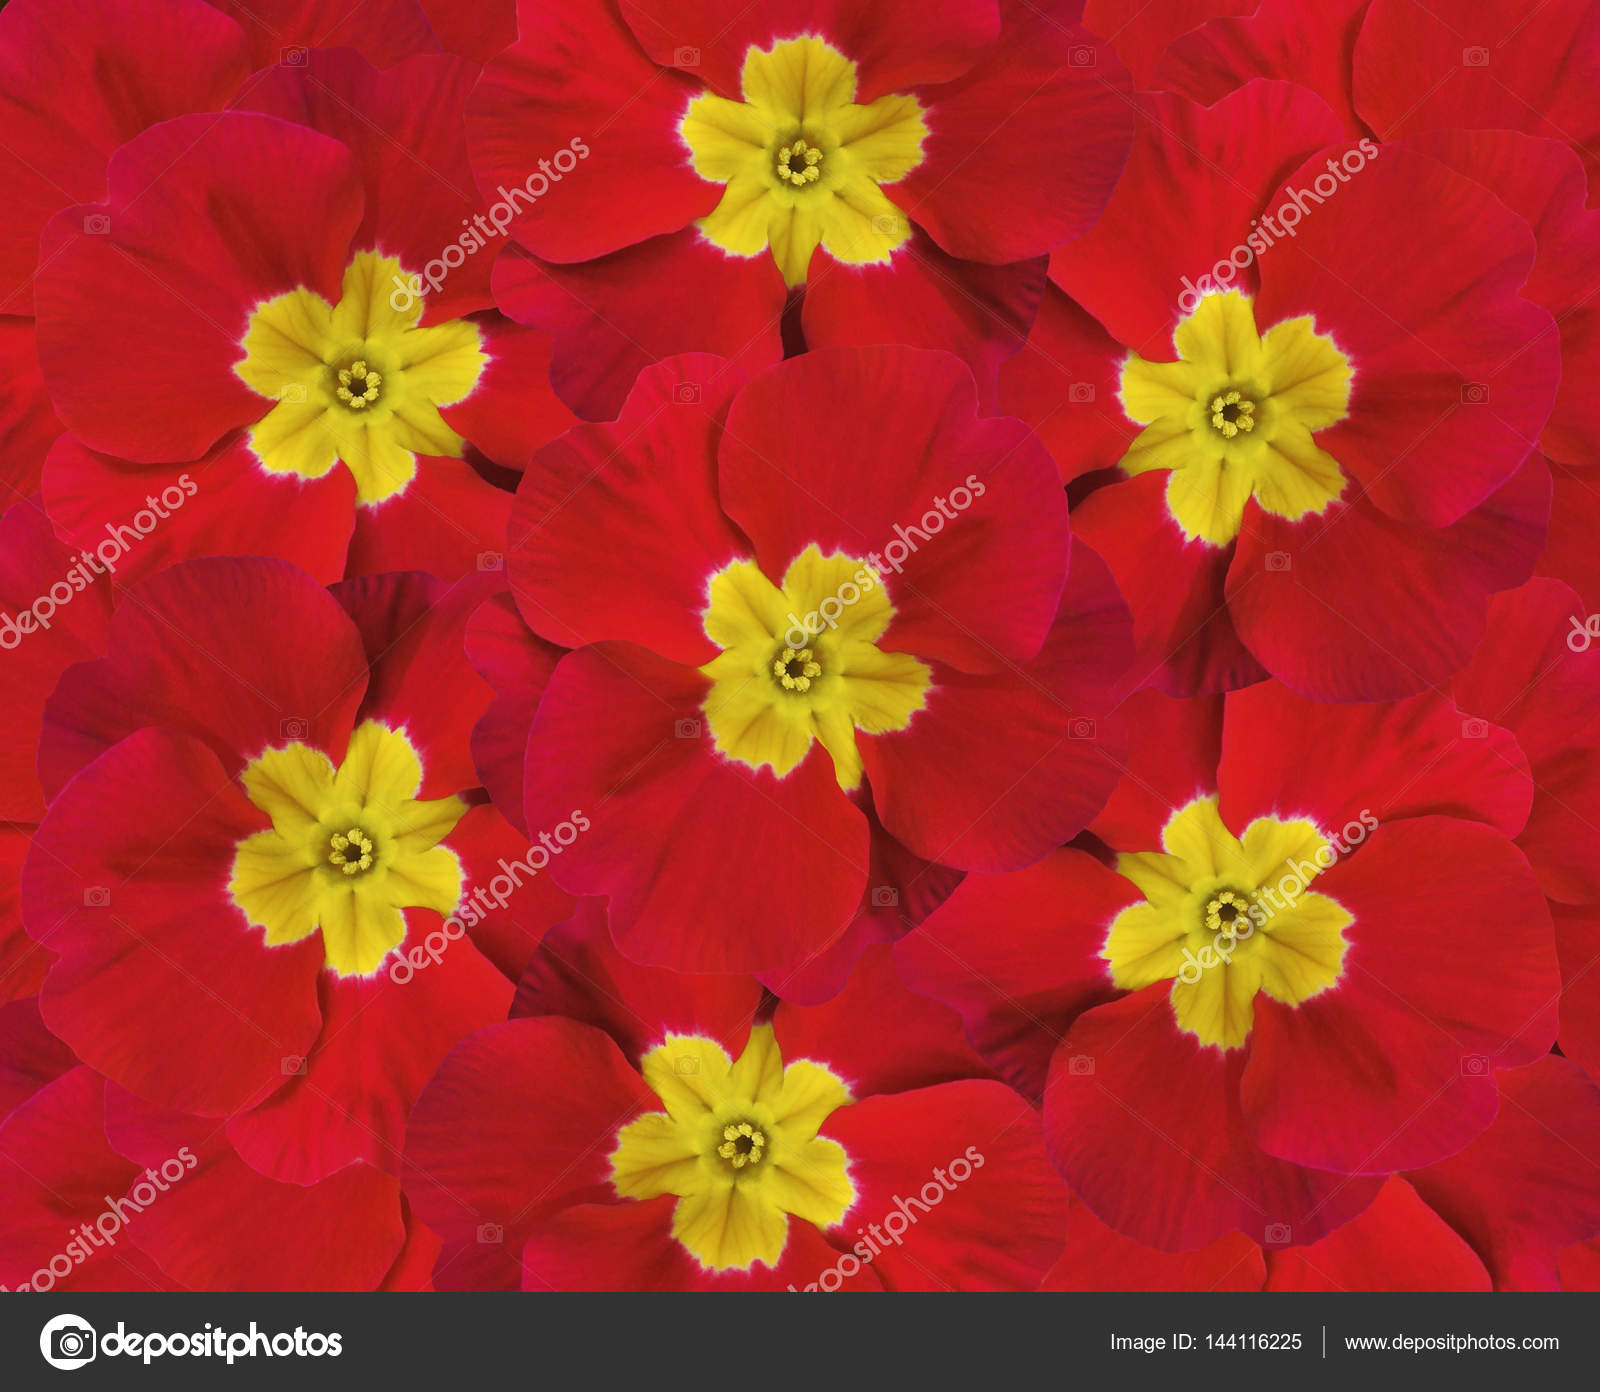 Flowers Red Violets Five Violets With A Yellow Center Floral